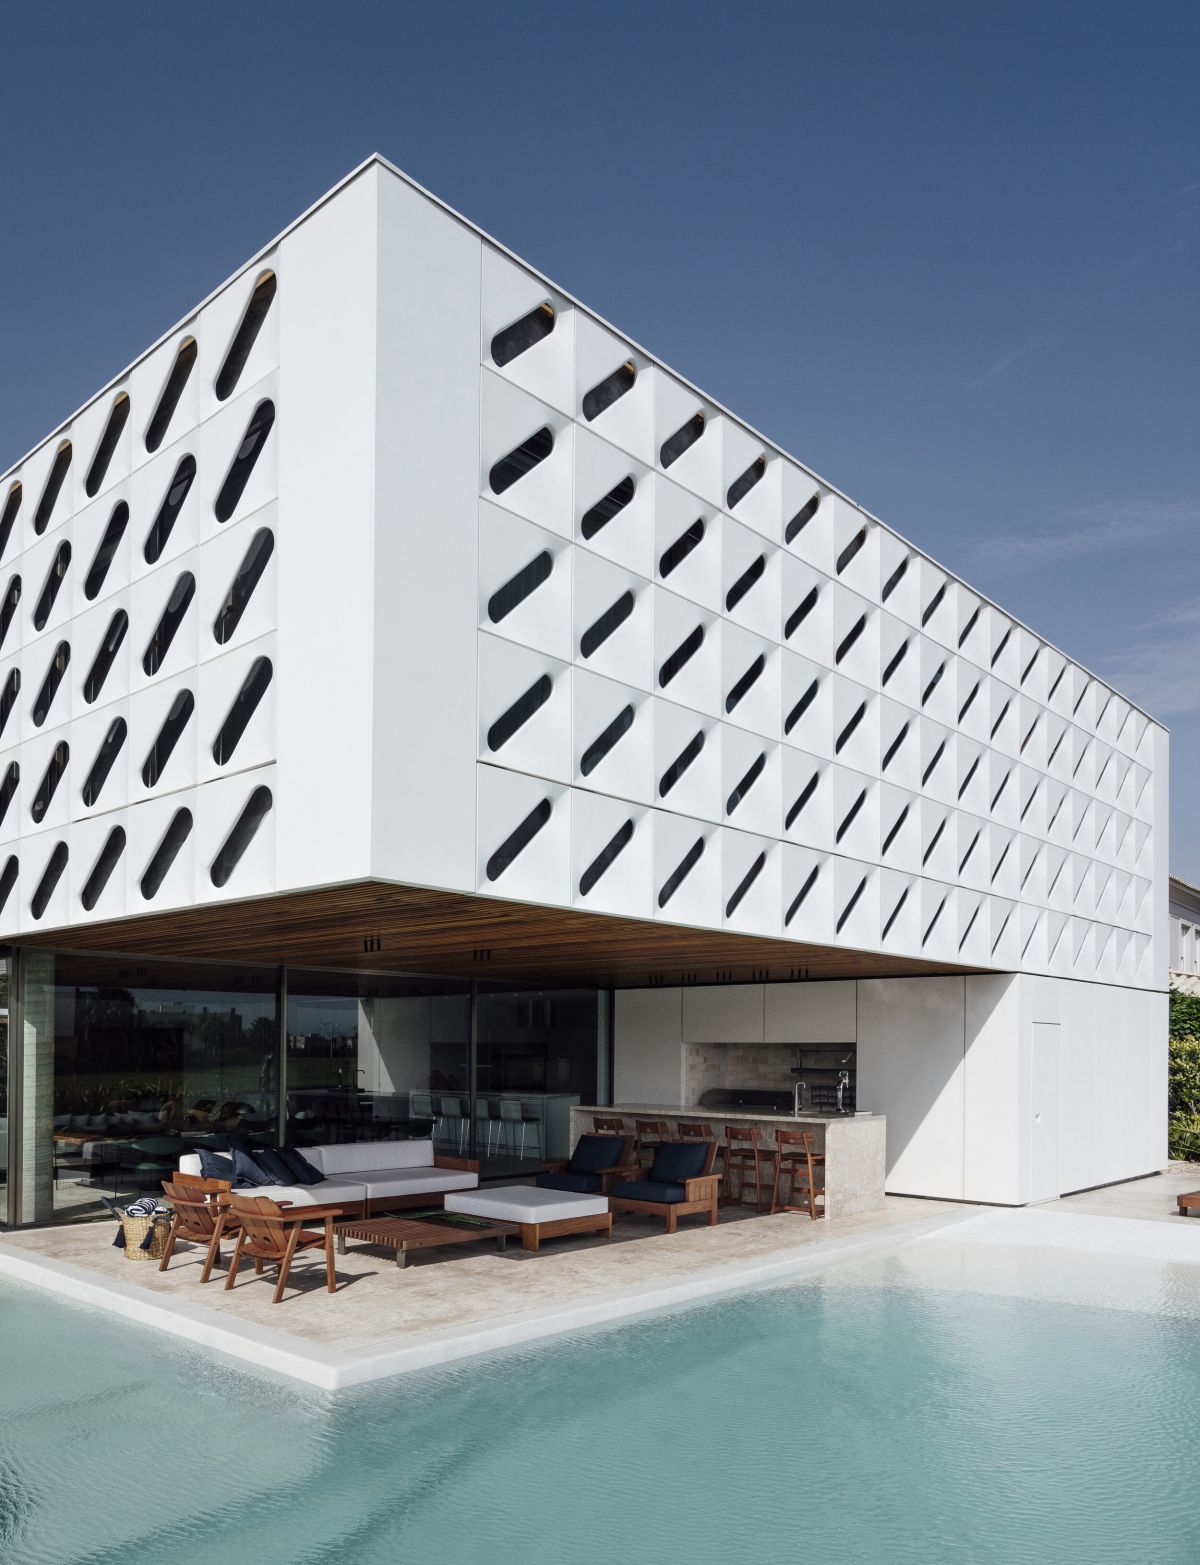 The L-shaped swimming pool wraps around the covered patio which serves as an extension of the indoor living area